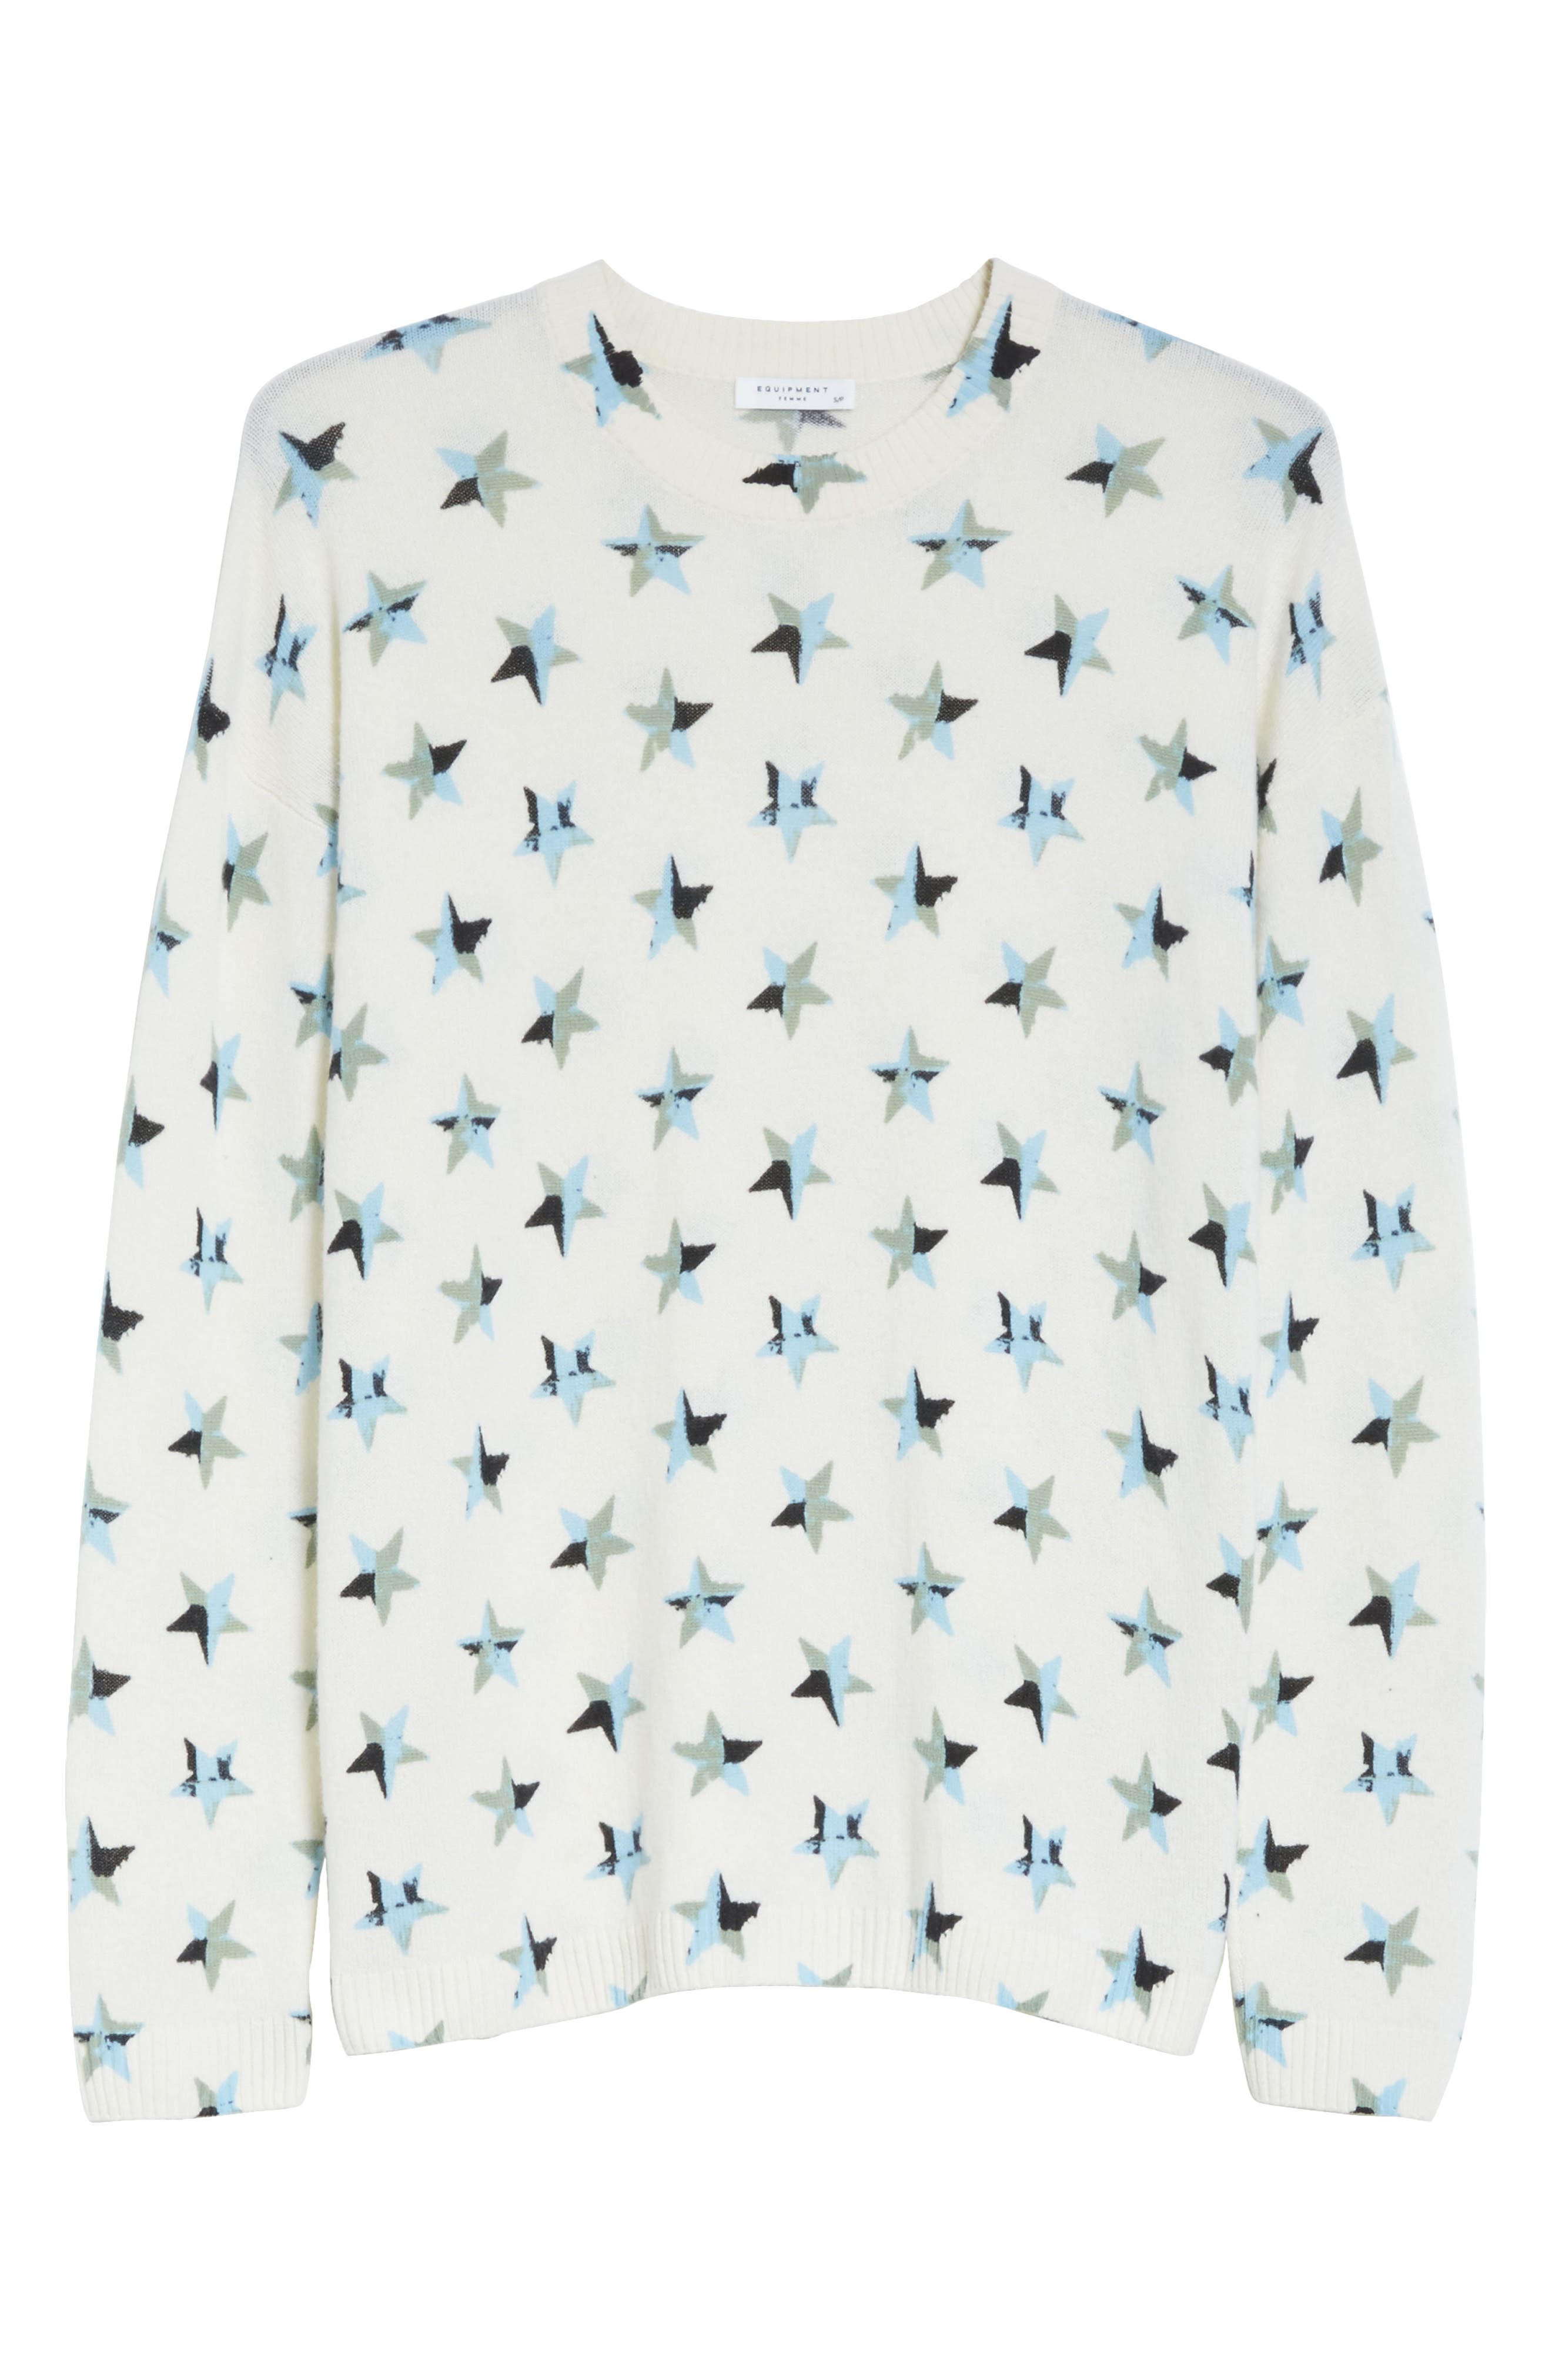 Bryce Star Print Cashmere Sweater,                             Alternate thumbnail 6, color,                             188